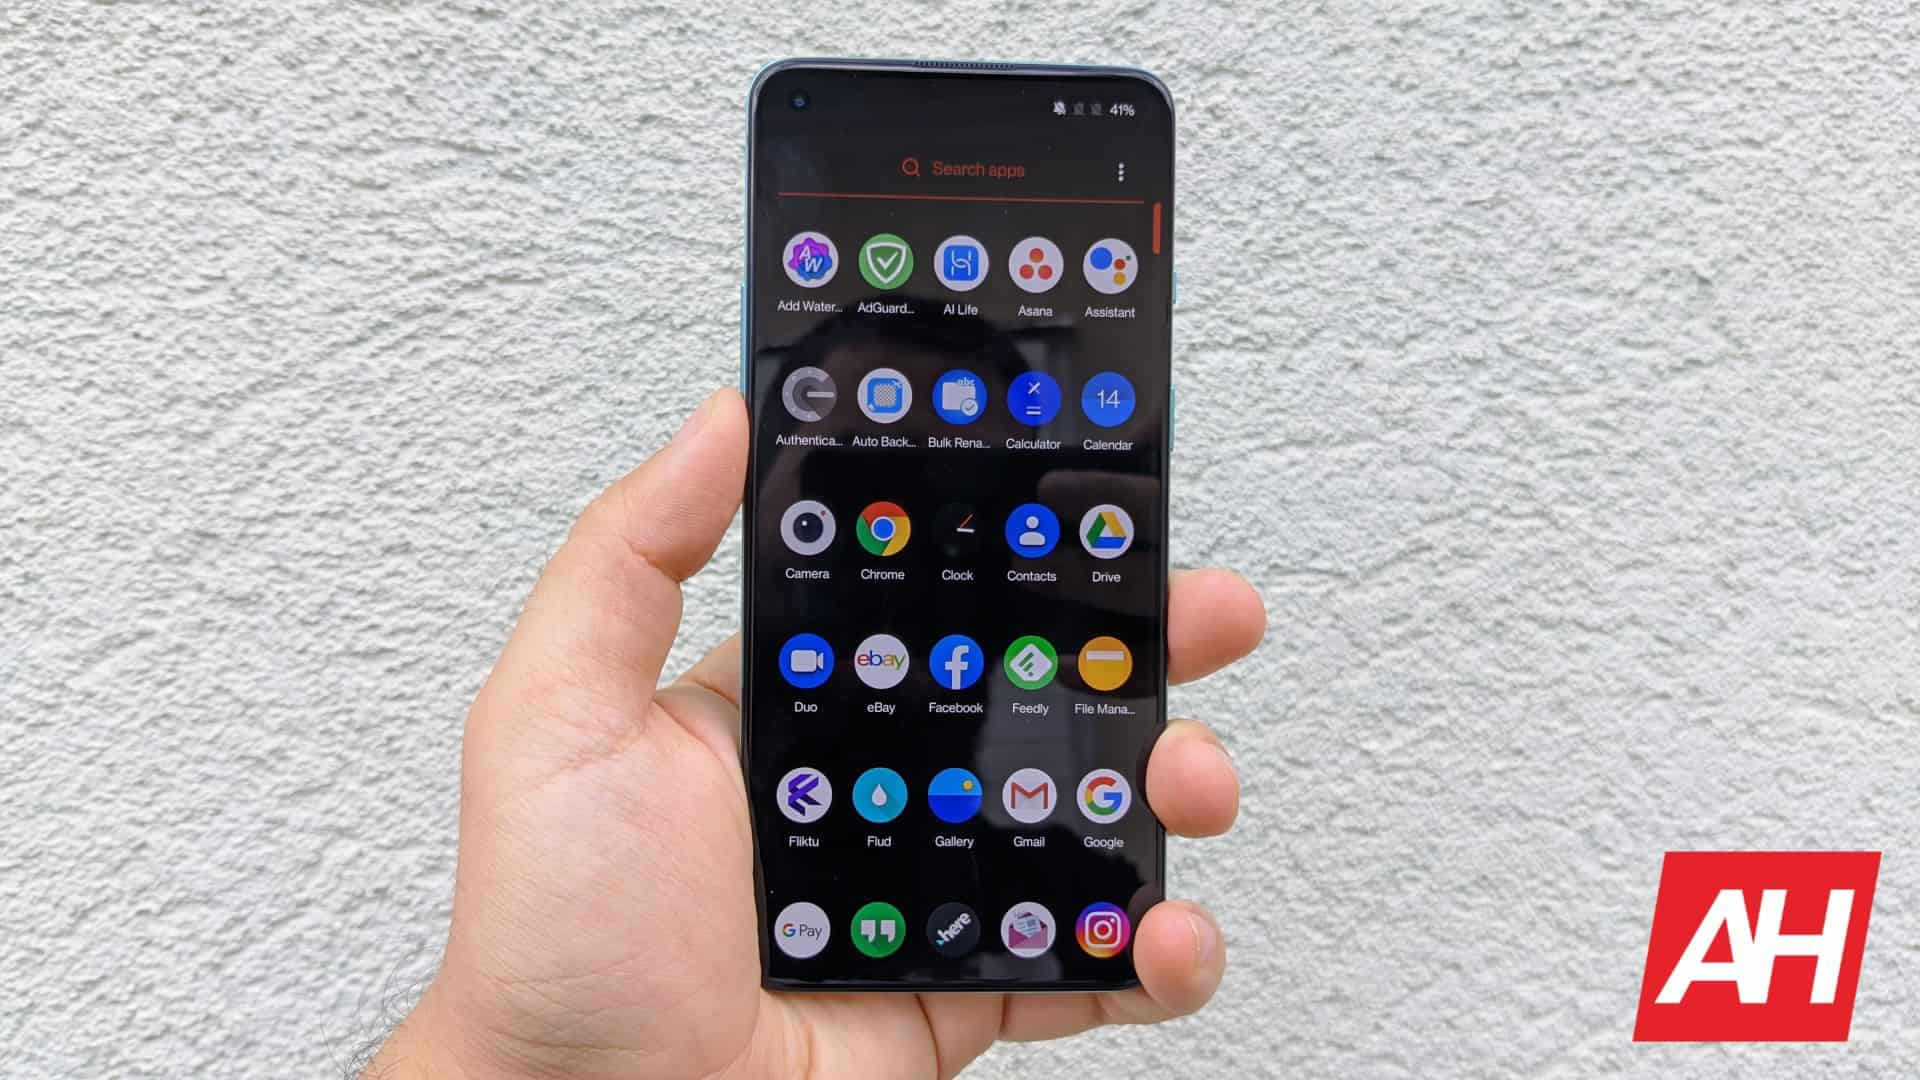 AH OnePlus 8T review image 772